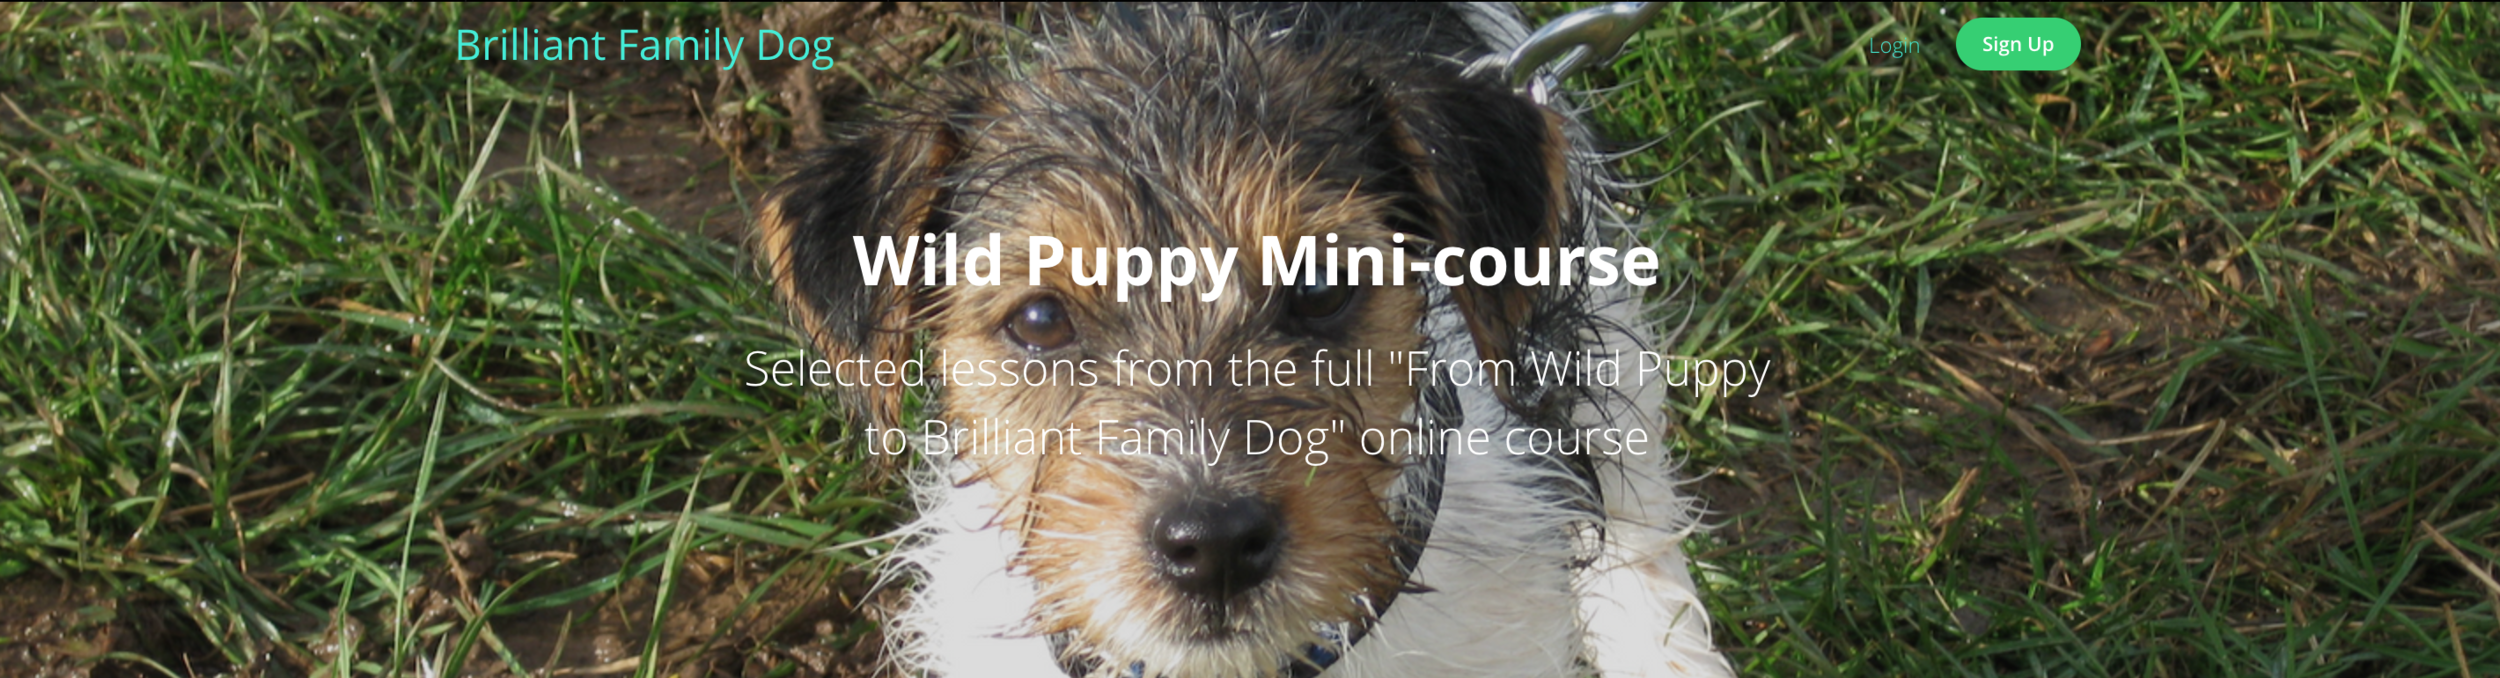 Wild Puppy mini-course | www.brilliantfammilydog.com